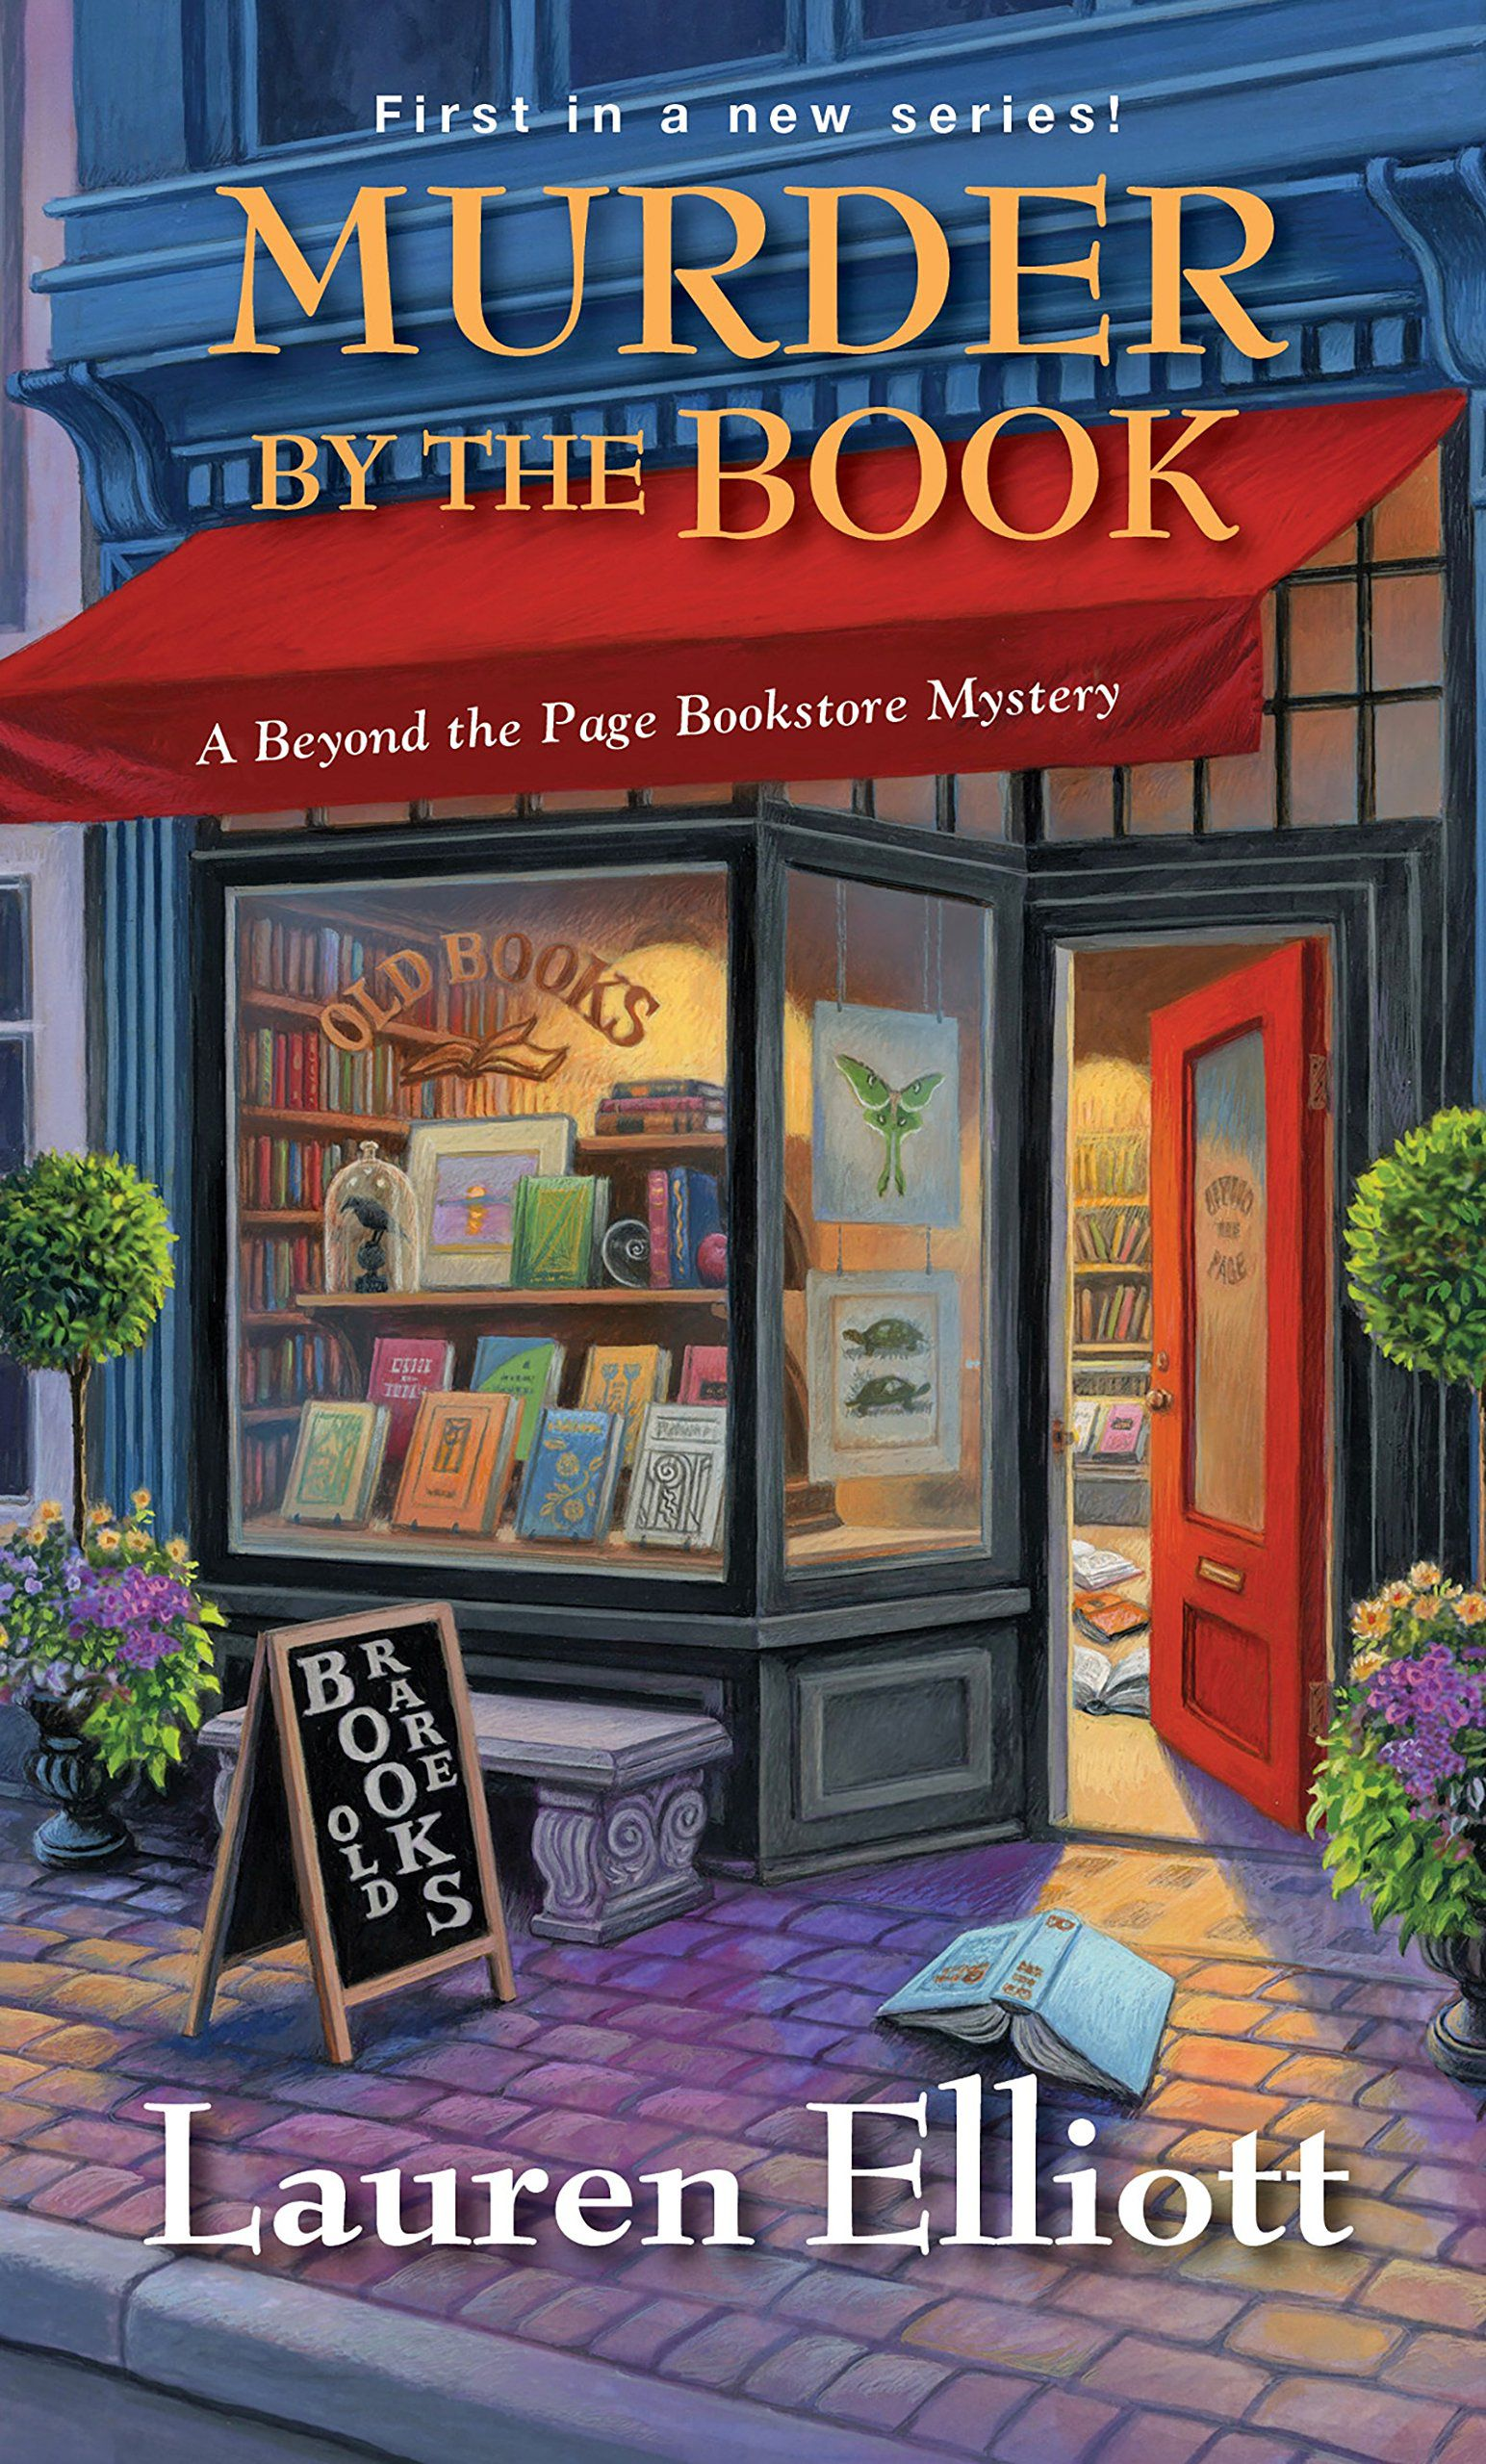 Beyond the Page Bookstore